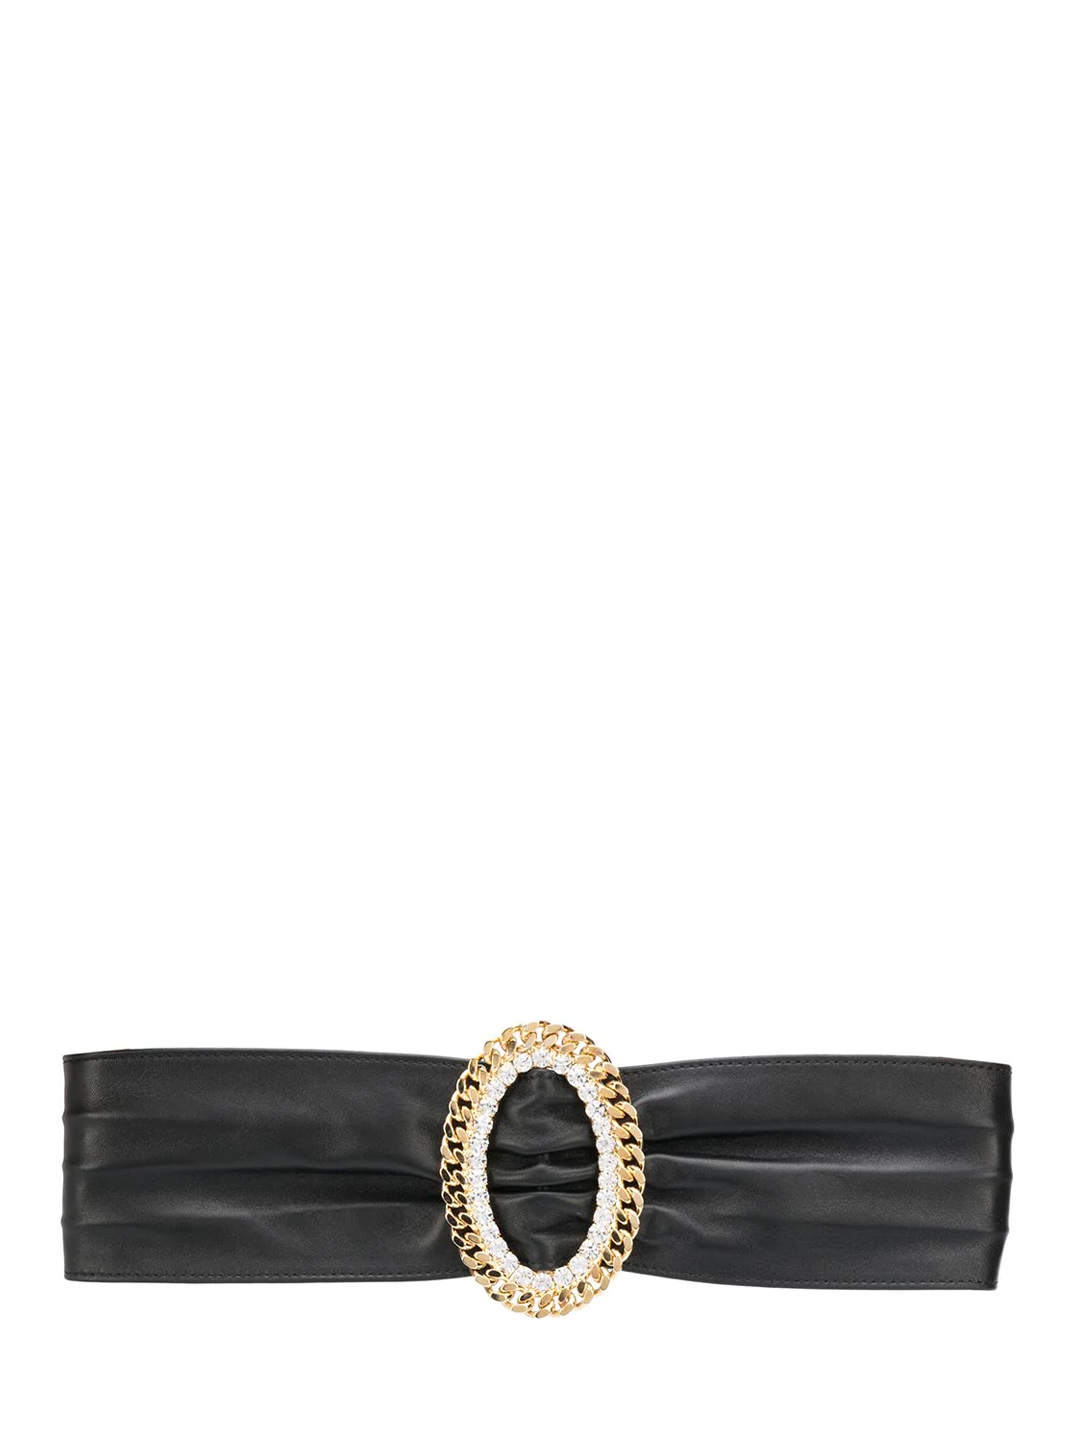 Alessandra Rich LEATHER BELT WITH CRYSTALS